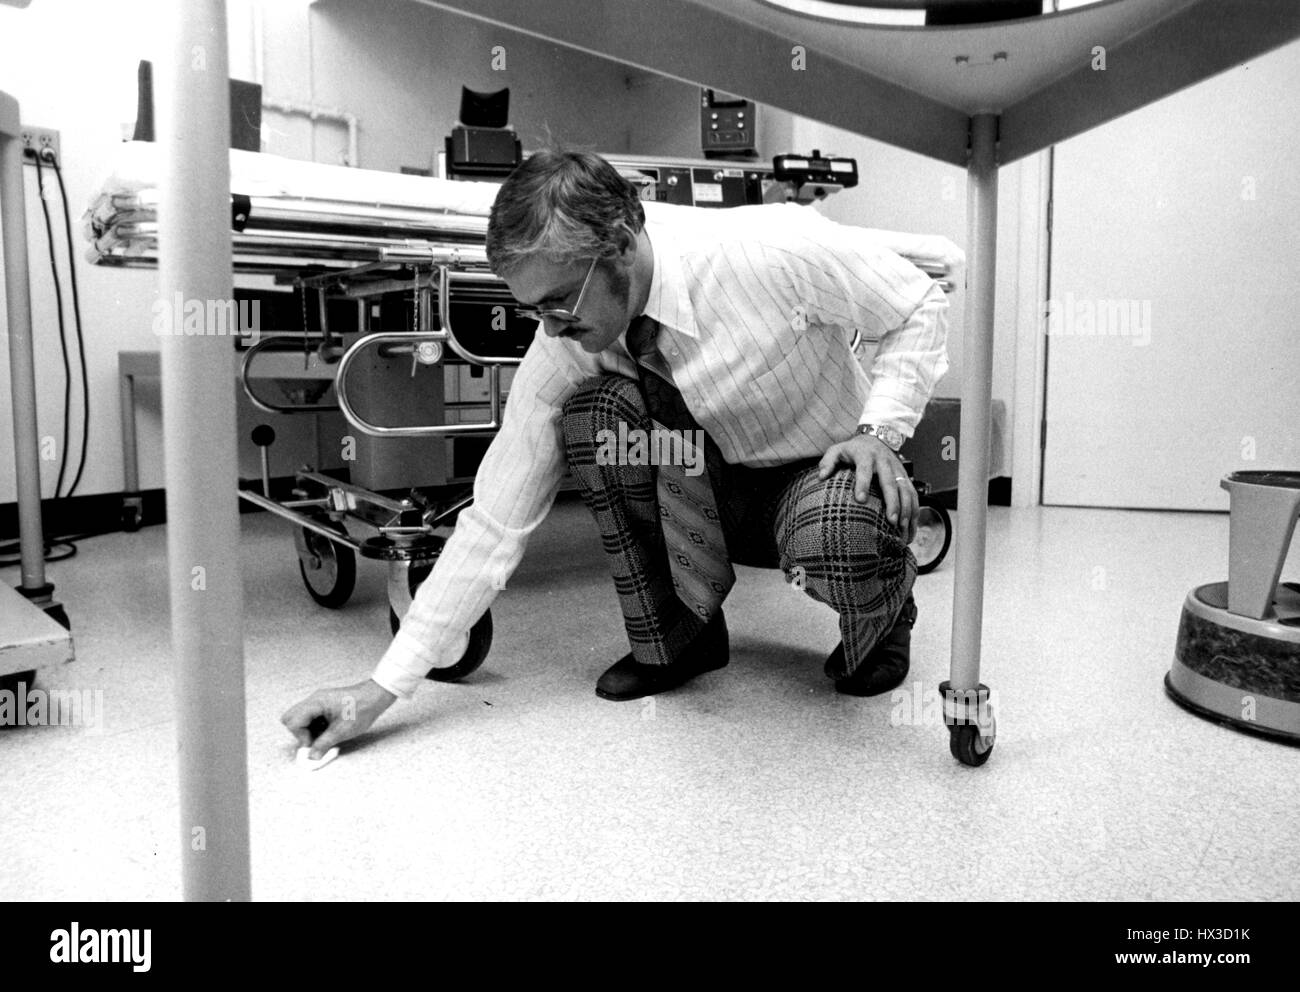 An inspector for the Atomic Energy Commission swabs the floor of a licensed hospital to test for radioactive contamination, - Stock Image